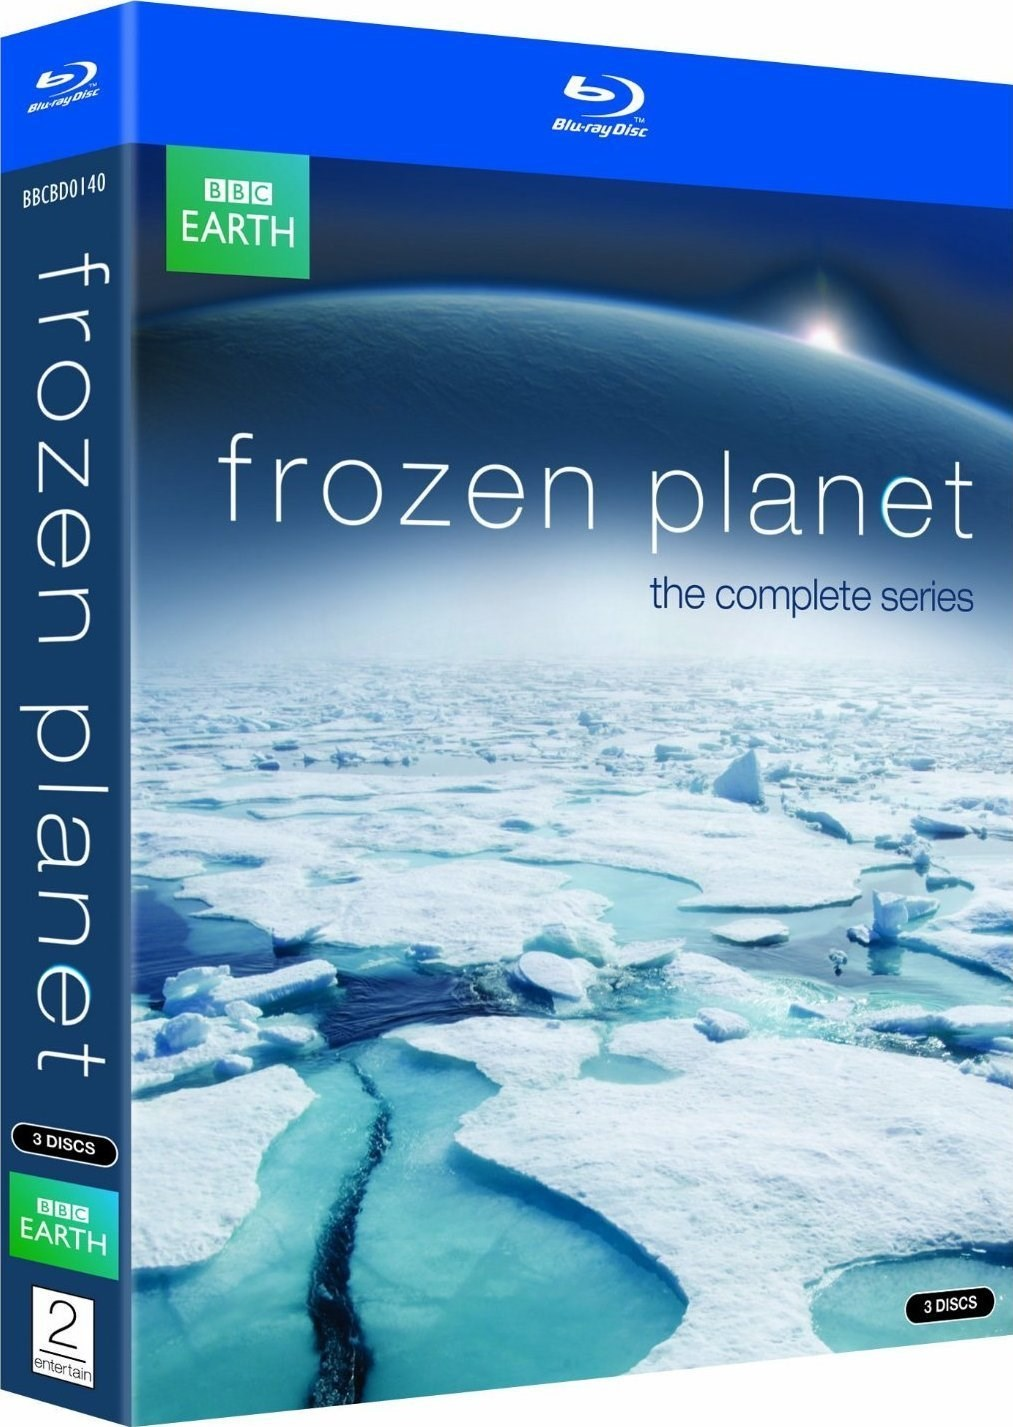 Frozen planet s01e07 720p hdtv x264 aac ssn mkv